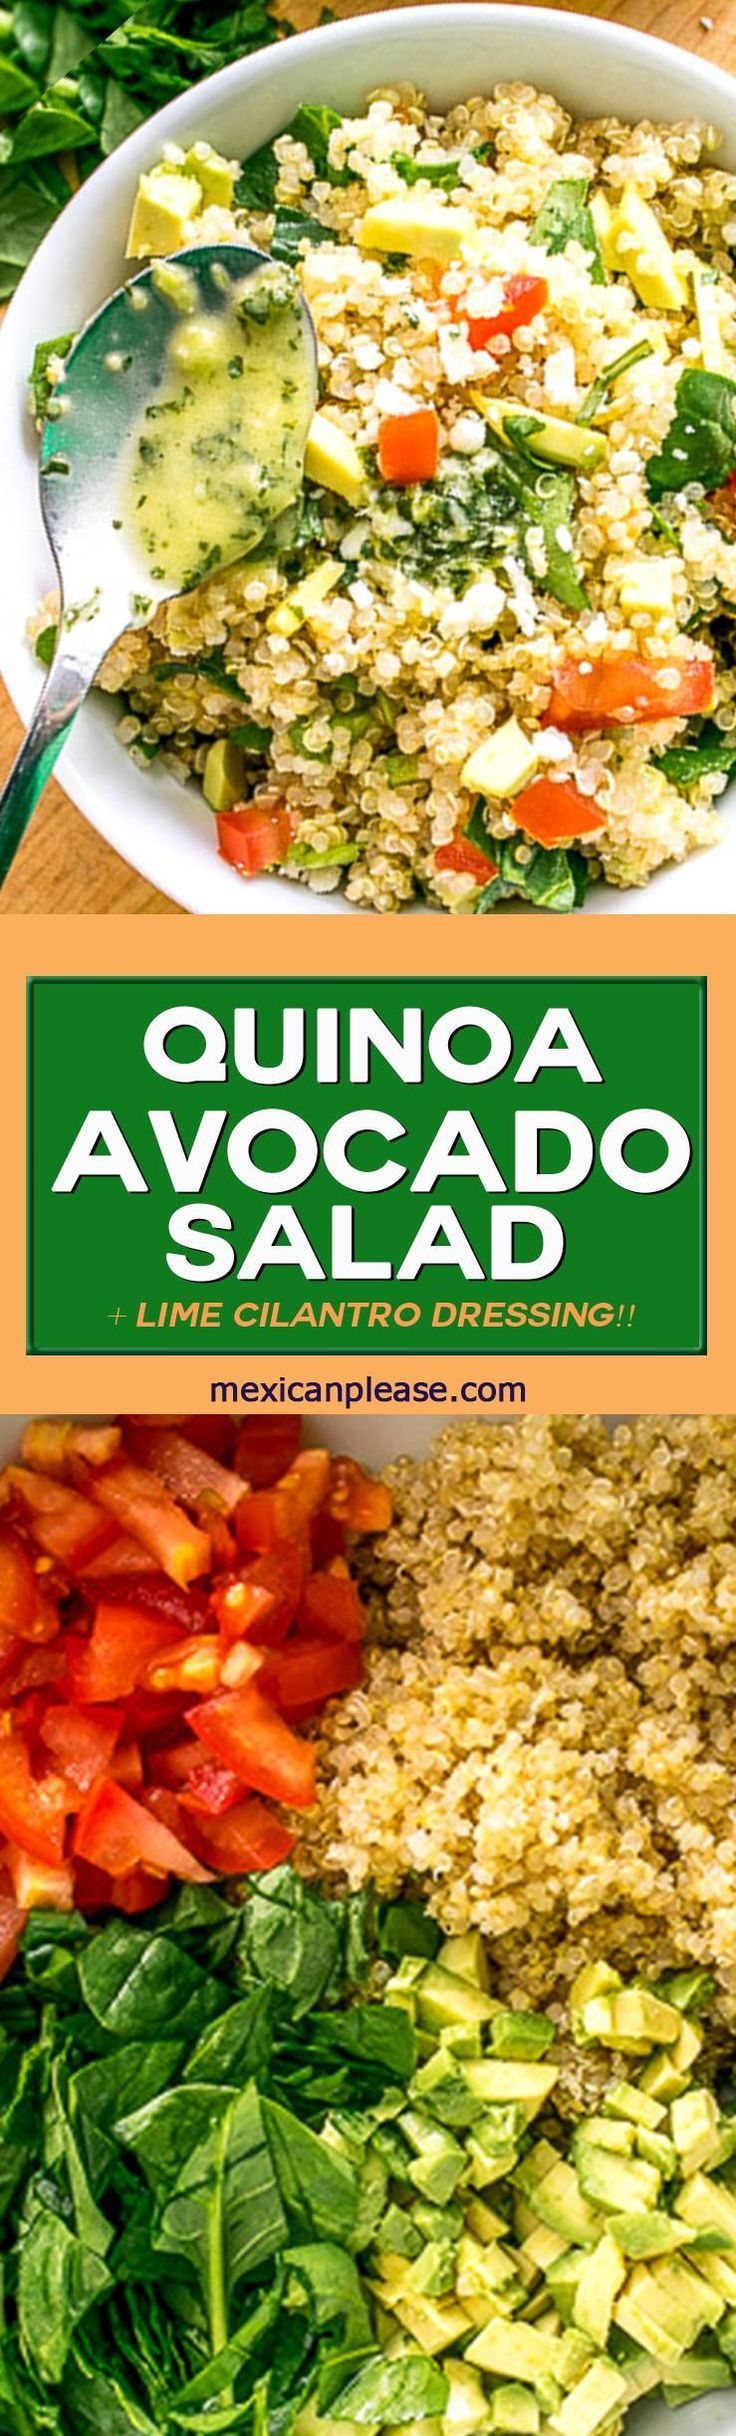 This Quinoa Avocado Salad is ridiculously healthy and tastes great on its own. Add in some Lime Cilantro Dressing and it becomes a keeper!!  Buen Provecho. #quinoa http://mexicanplease.com